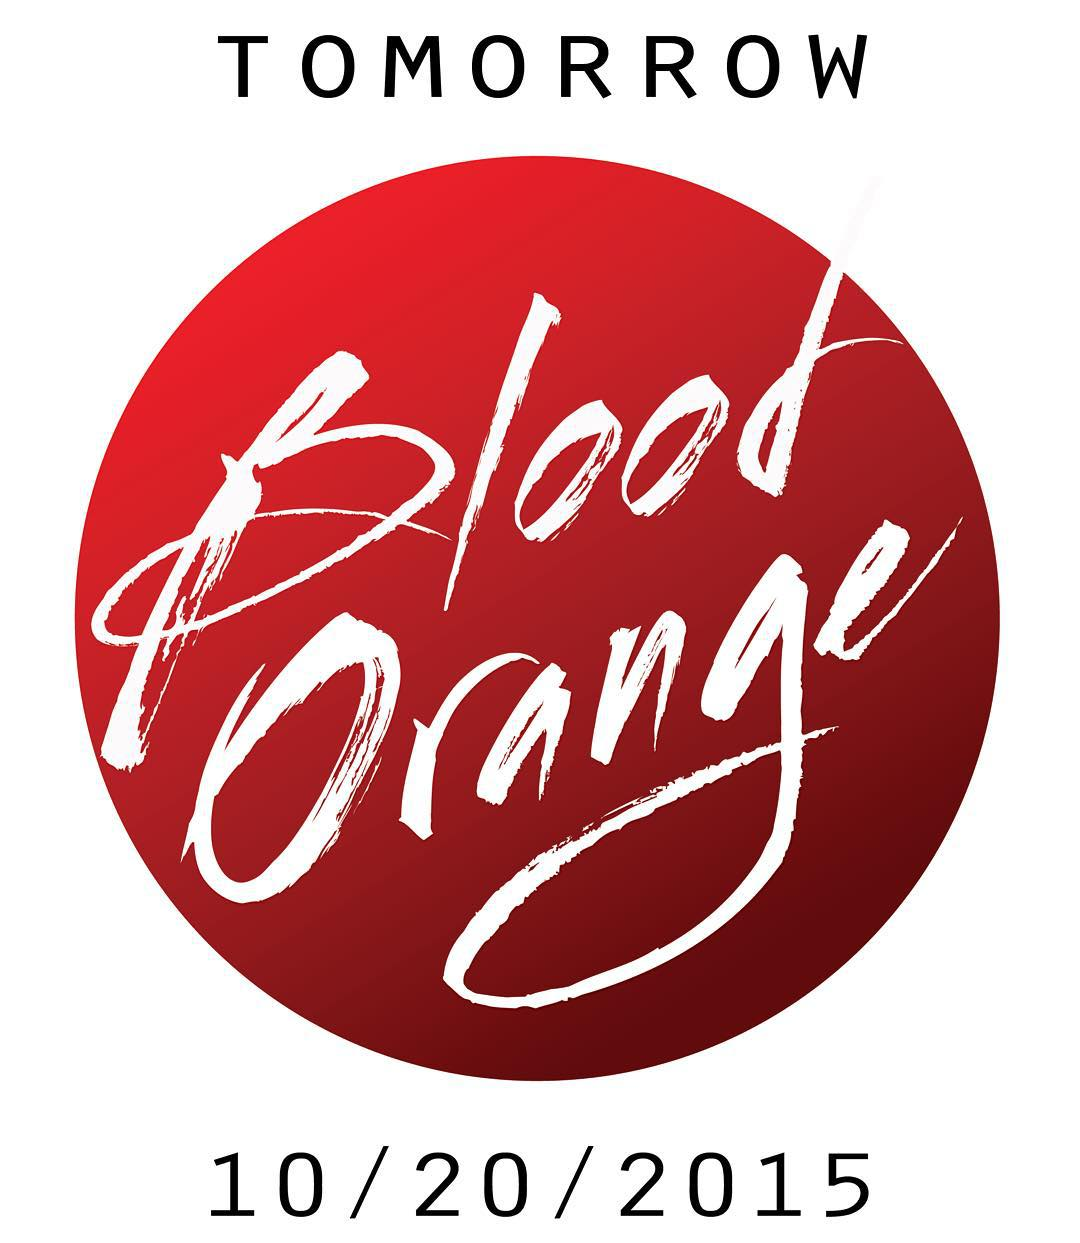 @skatebloodorange is about to drop some Fuego #TOMORROW get ready to go #skateboarding